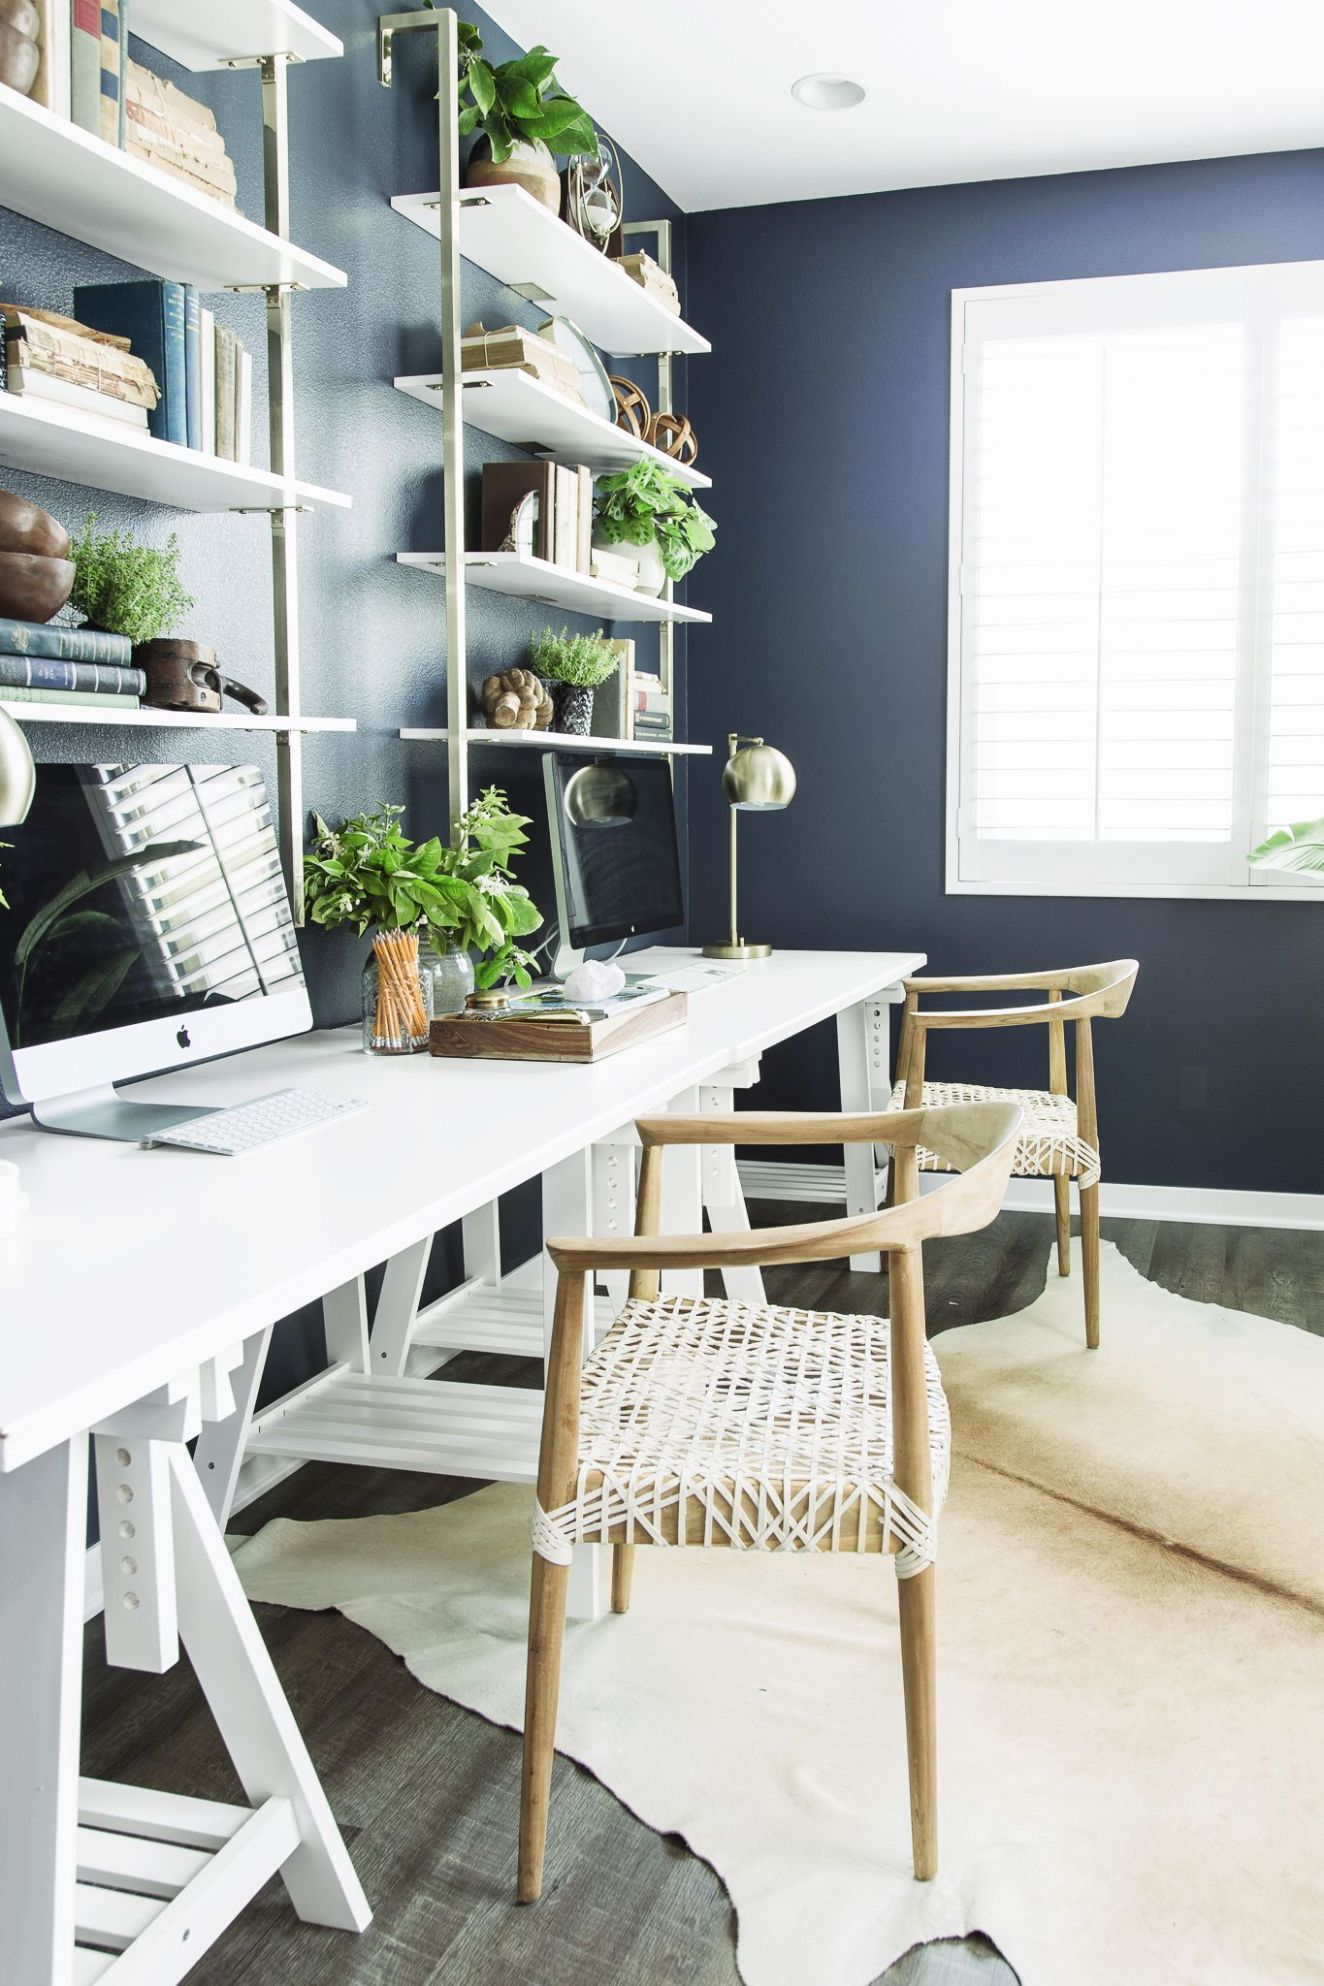 9 Best Home Office Decorating Ideas - Decor and Organization for ...